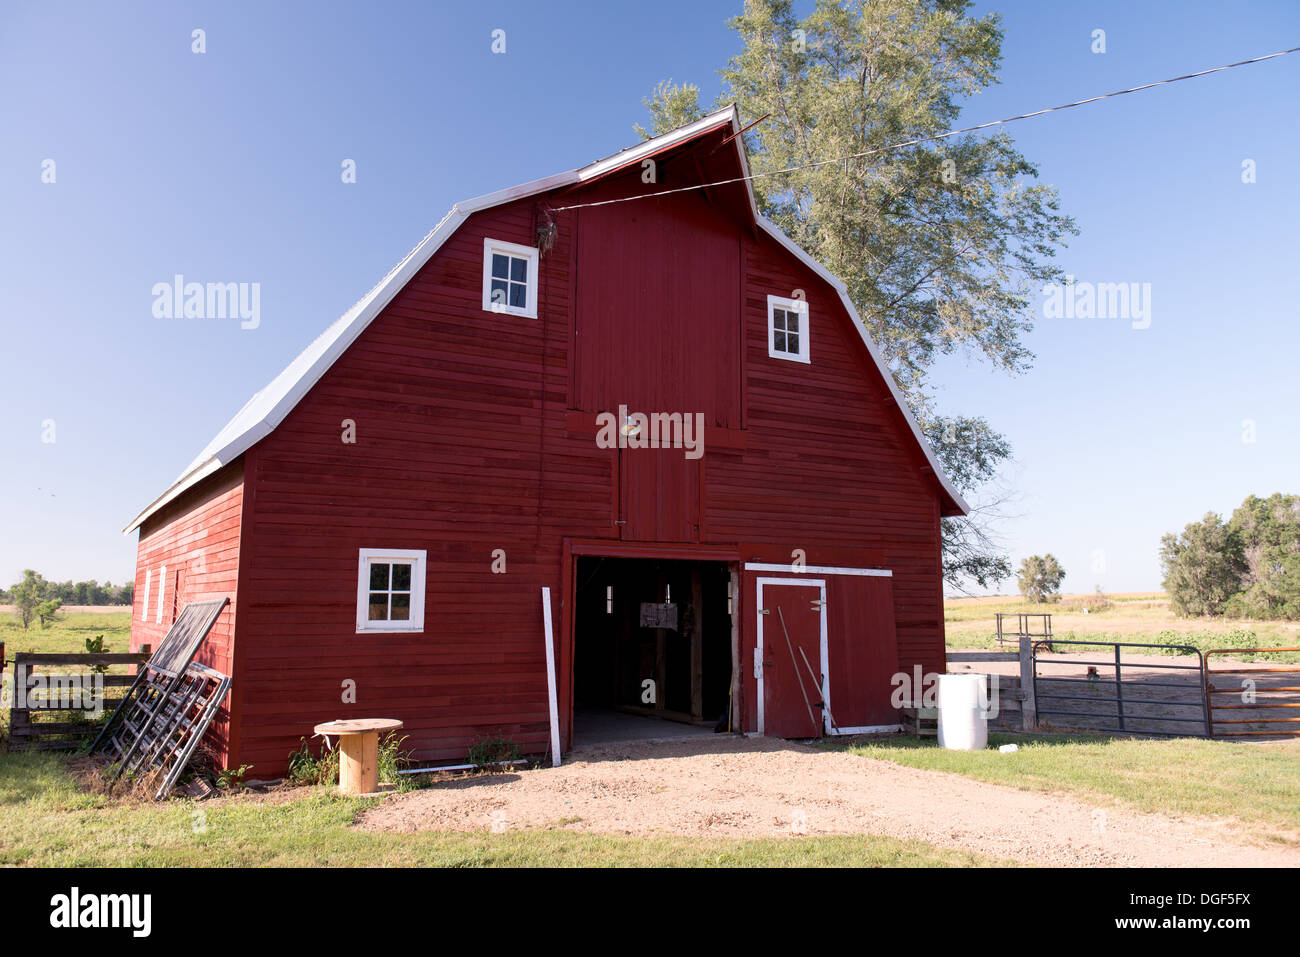 Red Barn with White Windows - Stock Image